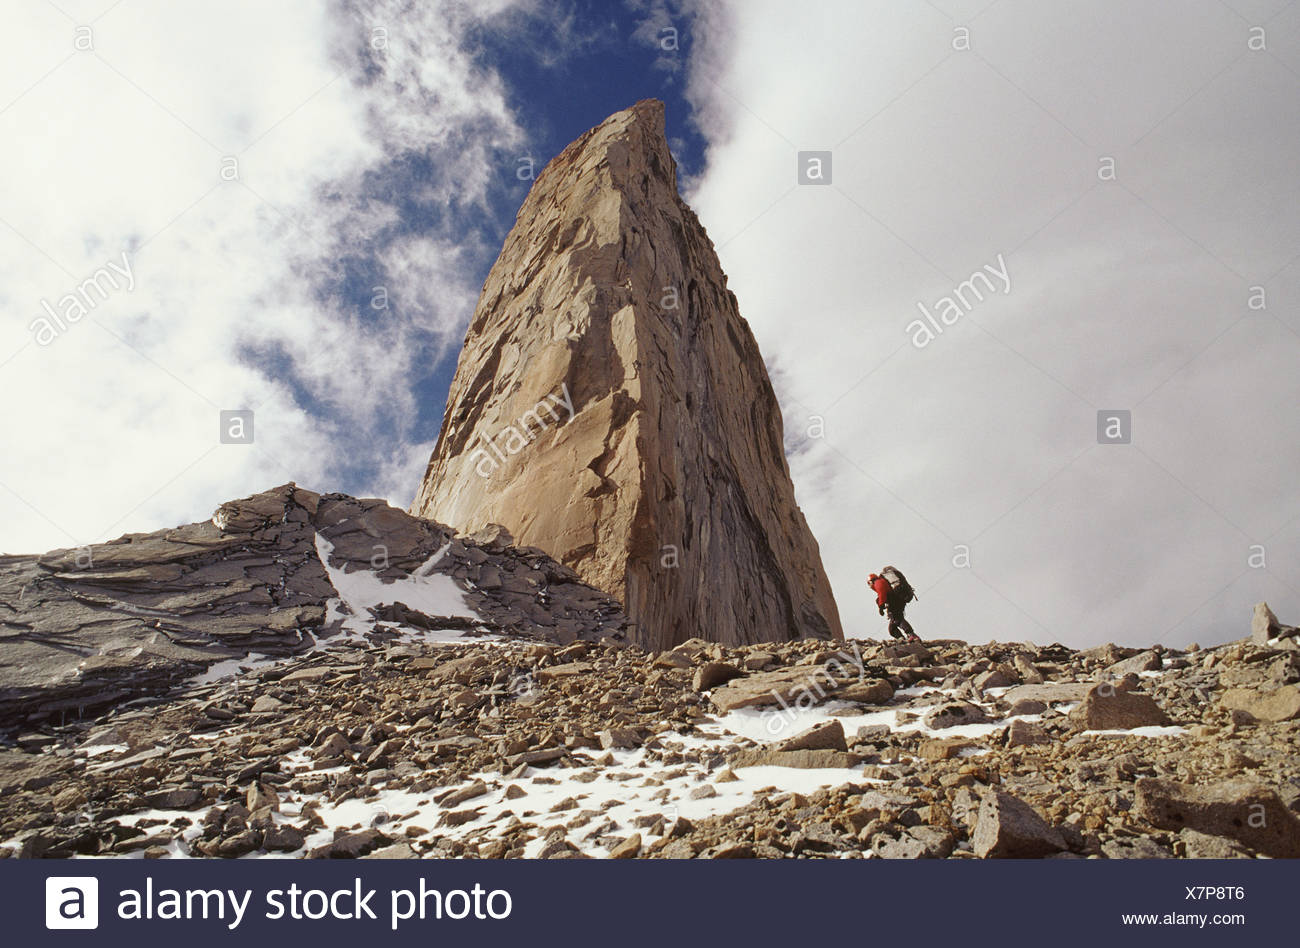 Climber approaching the sword torres del paine national park - Stock Image